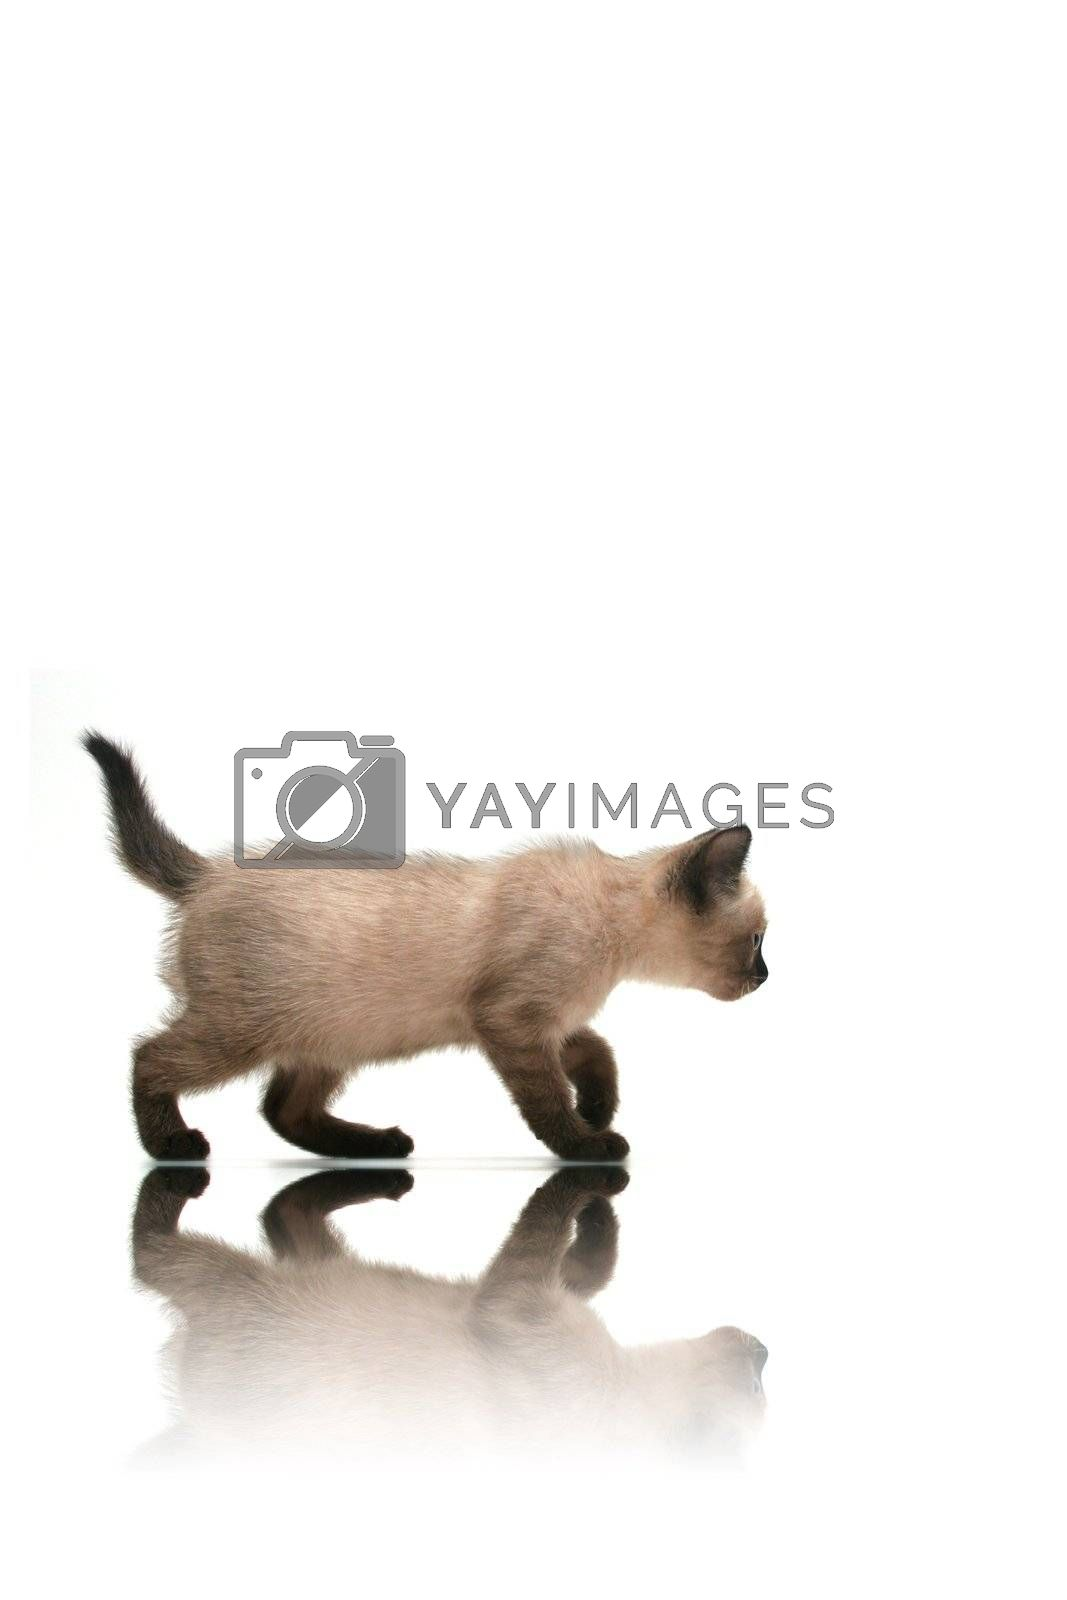 Small kitten walking with reflection on white background.